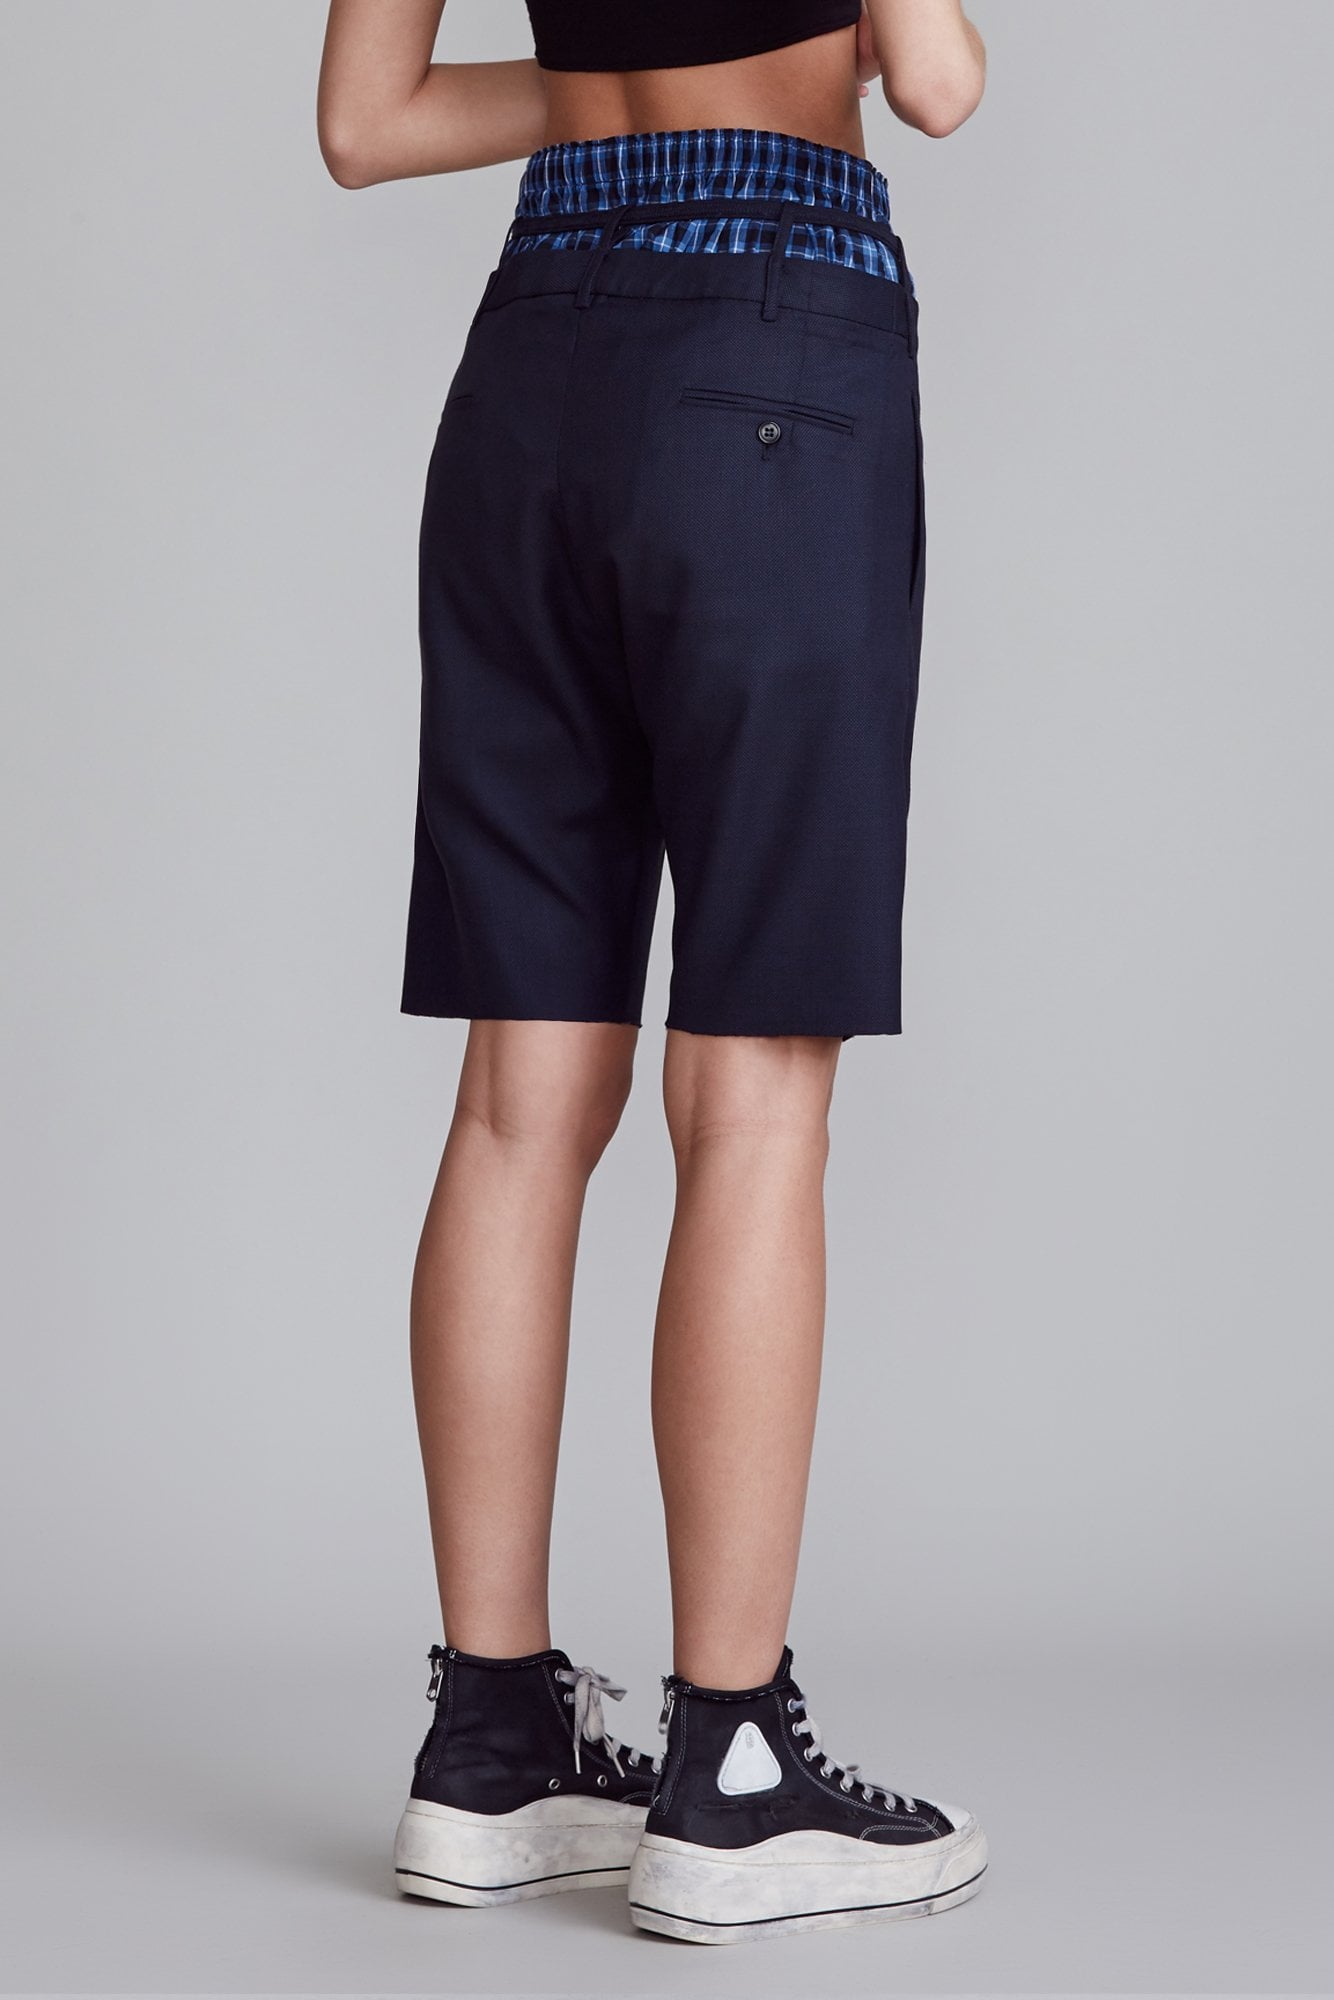 Ollie Shorts - Navy Pin Dot